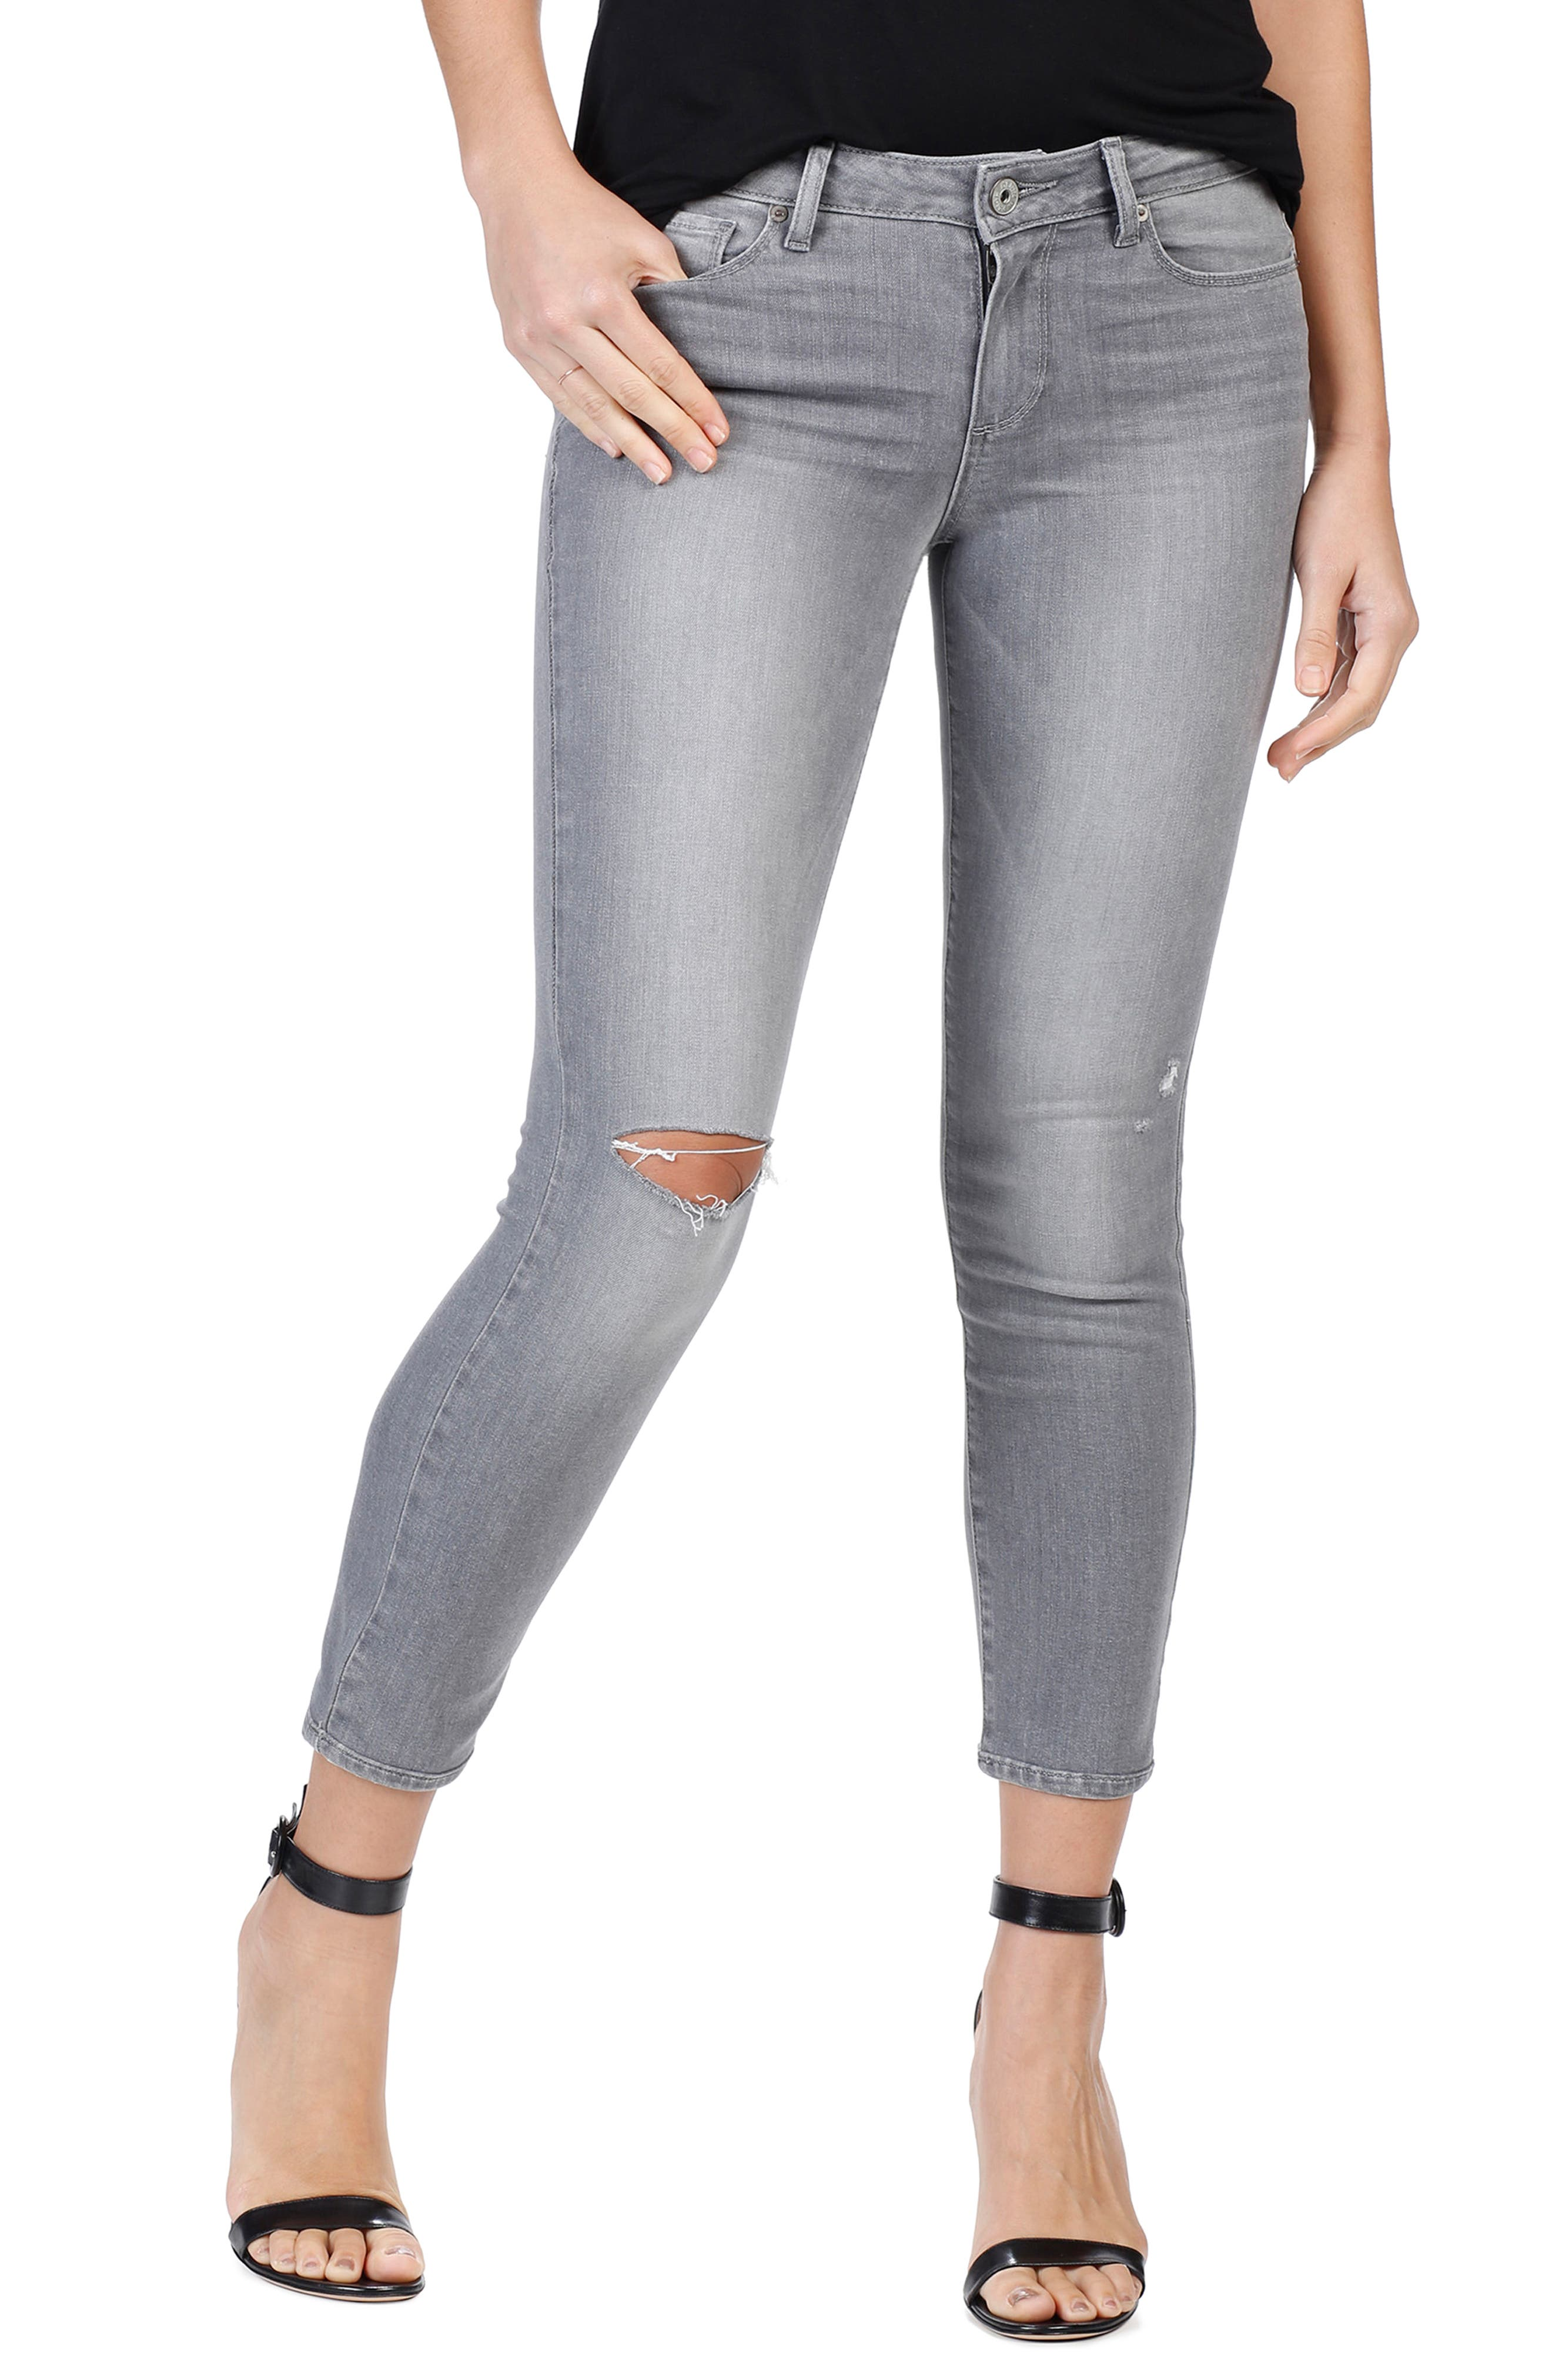 PAIGE Transcend - Verdugo Ripped Crop Skinny Jeans (Stone Grey Destructed)